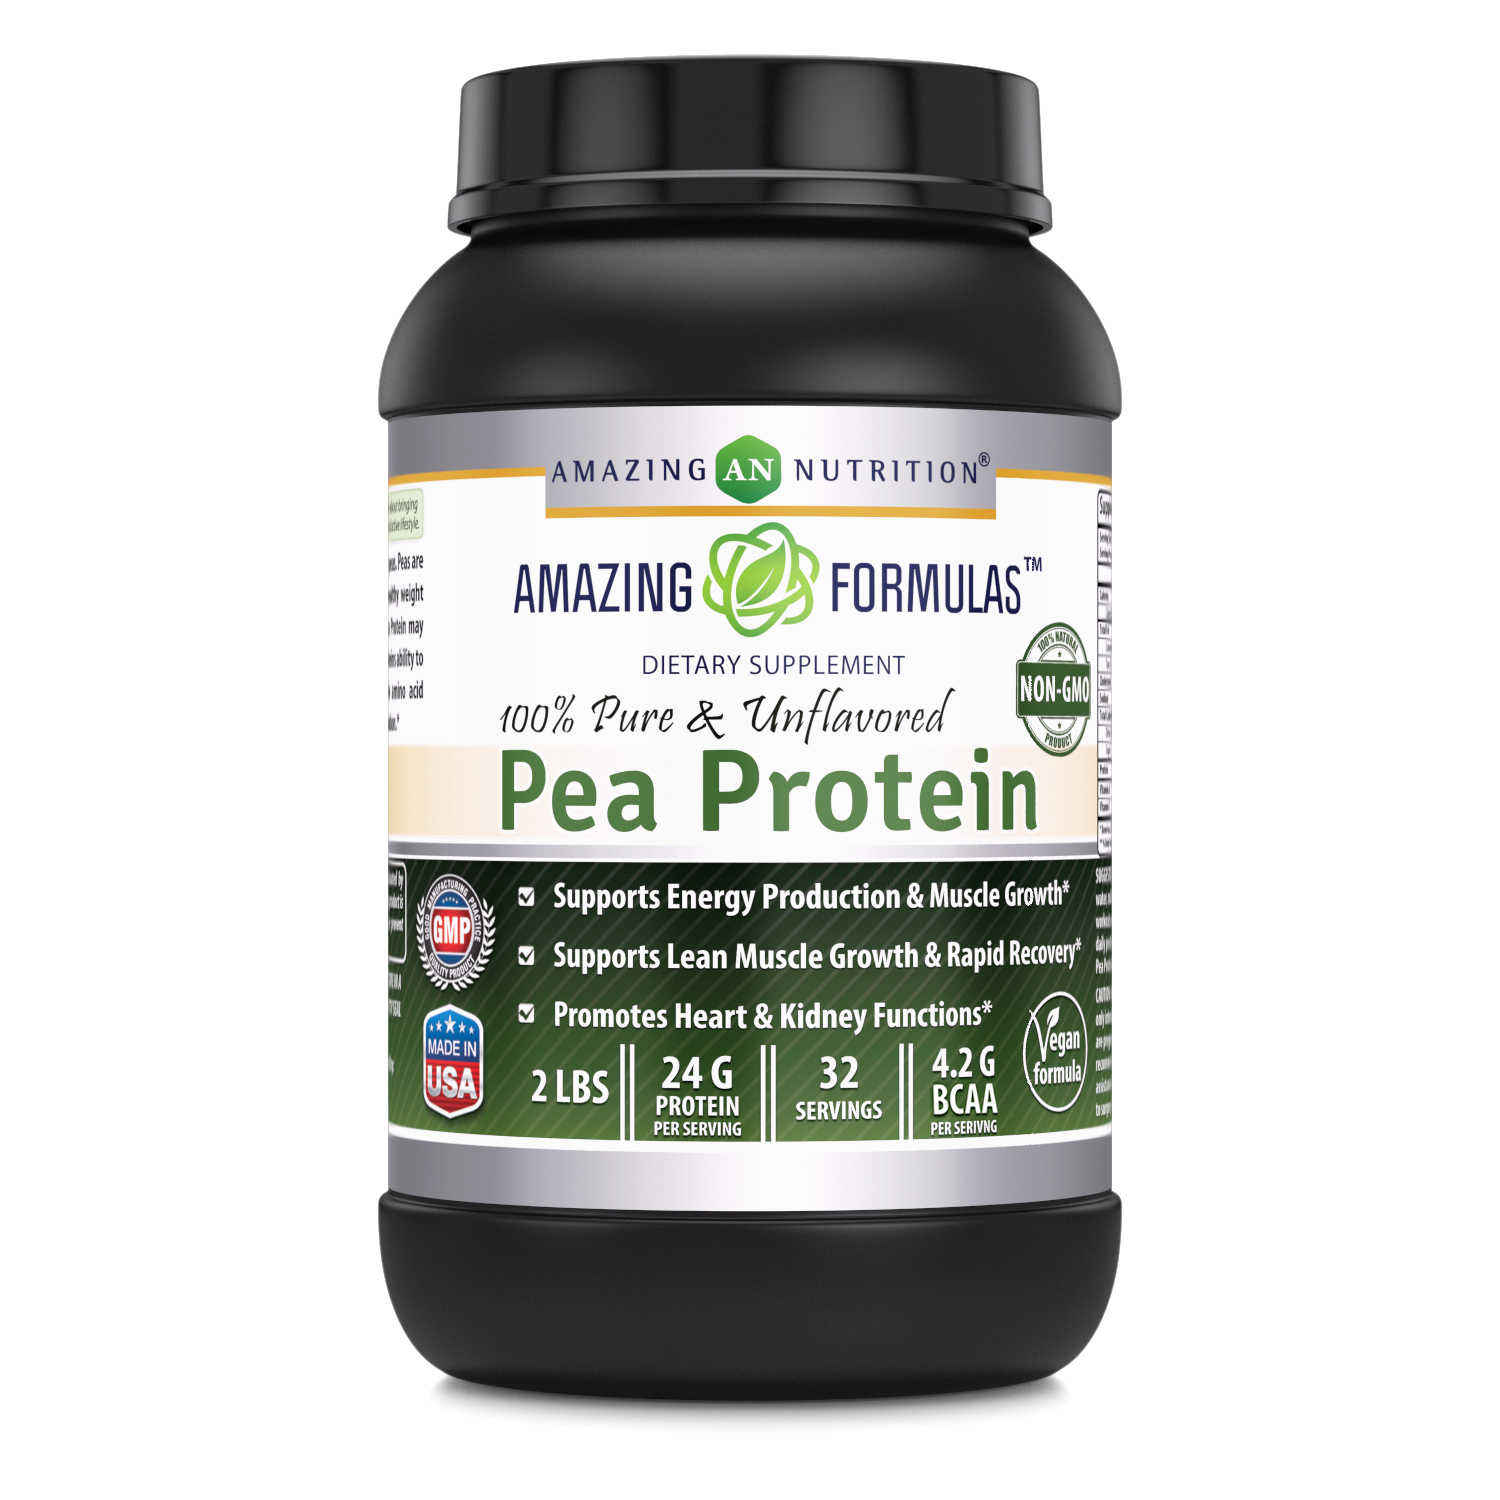 Amazing Nutrition Amazing Formulas 100% Pure & Unflavored Pea Protein Dietary Supplement - 2 lbs - Supports Energy Production and Muscle Growth - Promotes Heart and Kidney Function